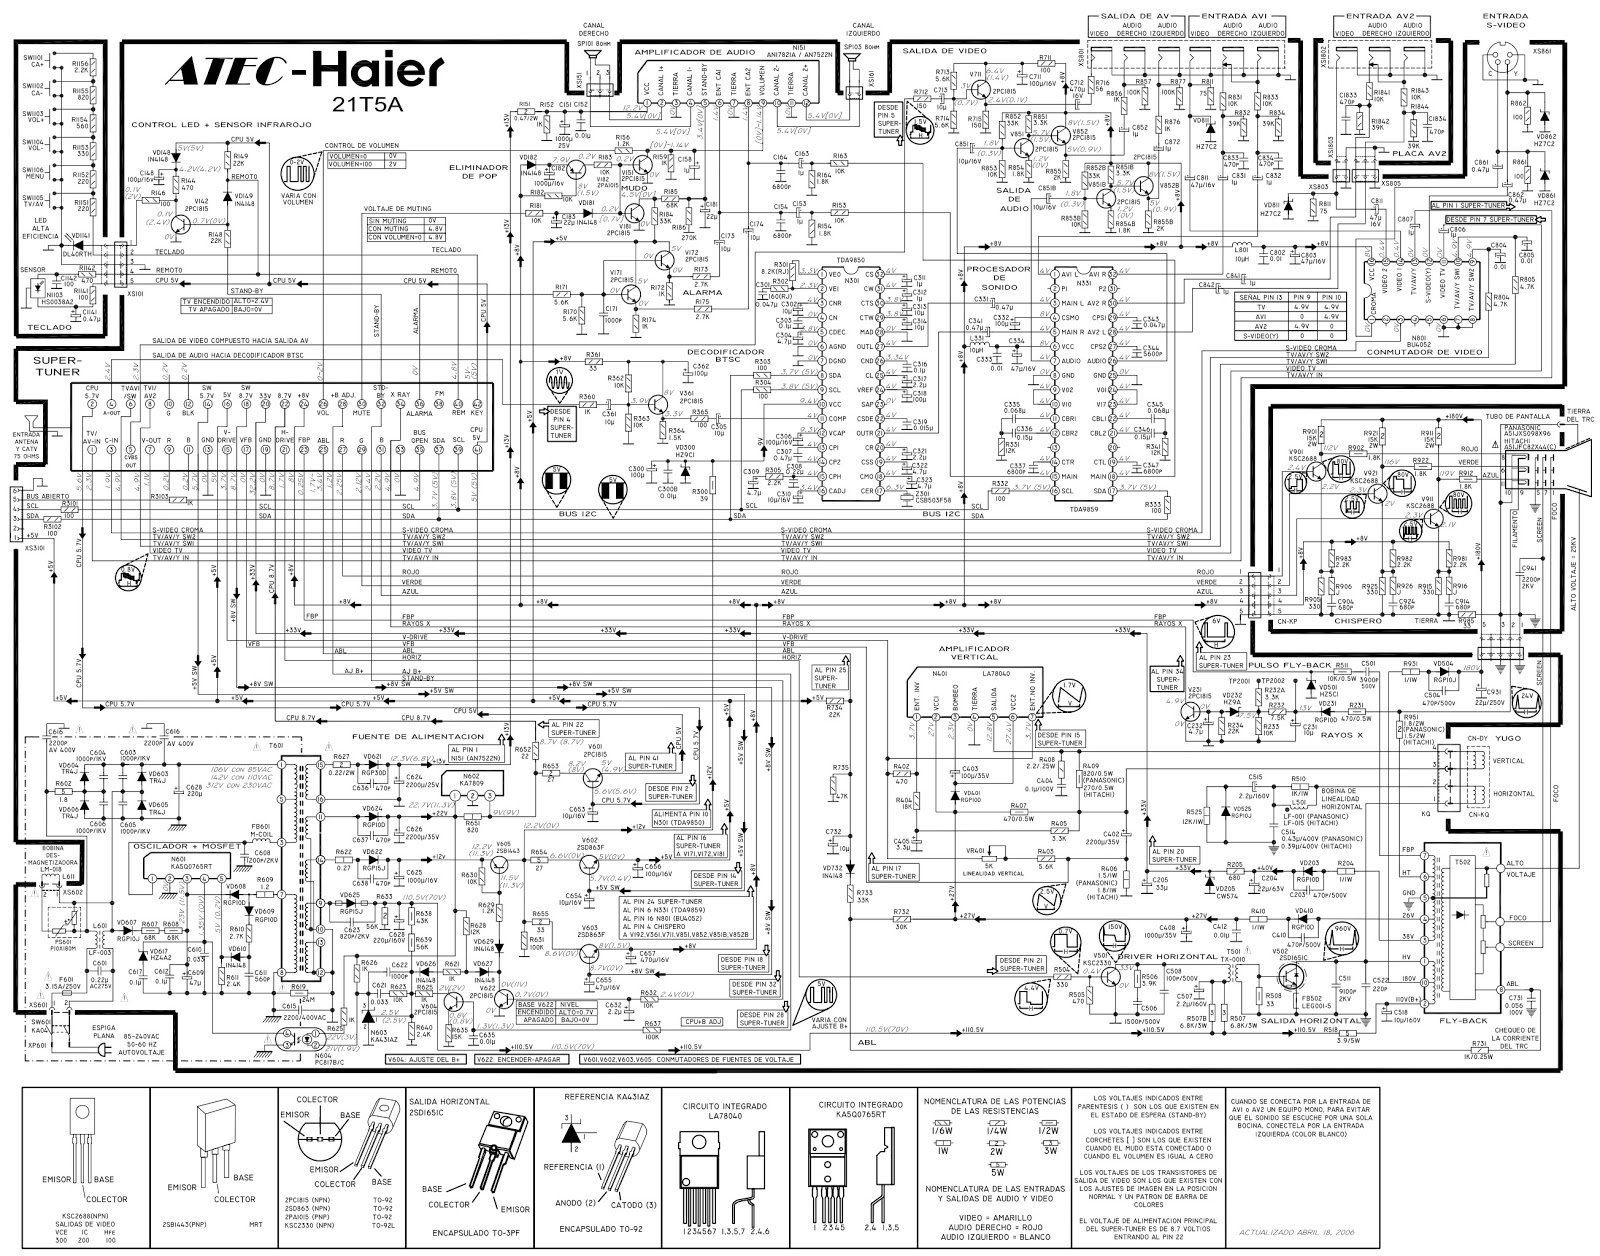 T V Circuit Diagram Free Download | Wiring Diagram  Mins Wiring Diagram on snatch block diagrams, lighting diagrams, honda motorcycle repair diagrams, switch diagrams, led circuit diagrams, motor diagrams, friendship bracelet diagrams, electrical diagrams, smart car diagrams, hvac diagrams, transformer diagrams, troubleshooting diagrams, series and parallel circuits diagrams, sincgars radio configurations diagrams, electronic circuit diagrams, engine diagrams, pinout diagrams, gmc fuse box diagrams, internet of things diagrams, battery diagrams,